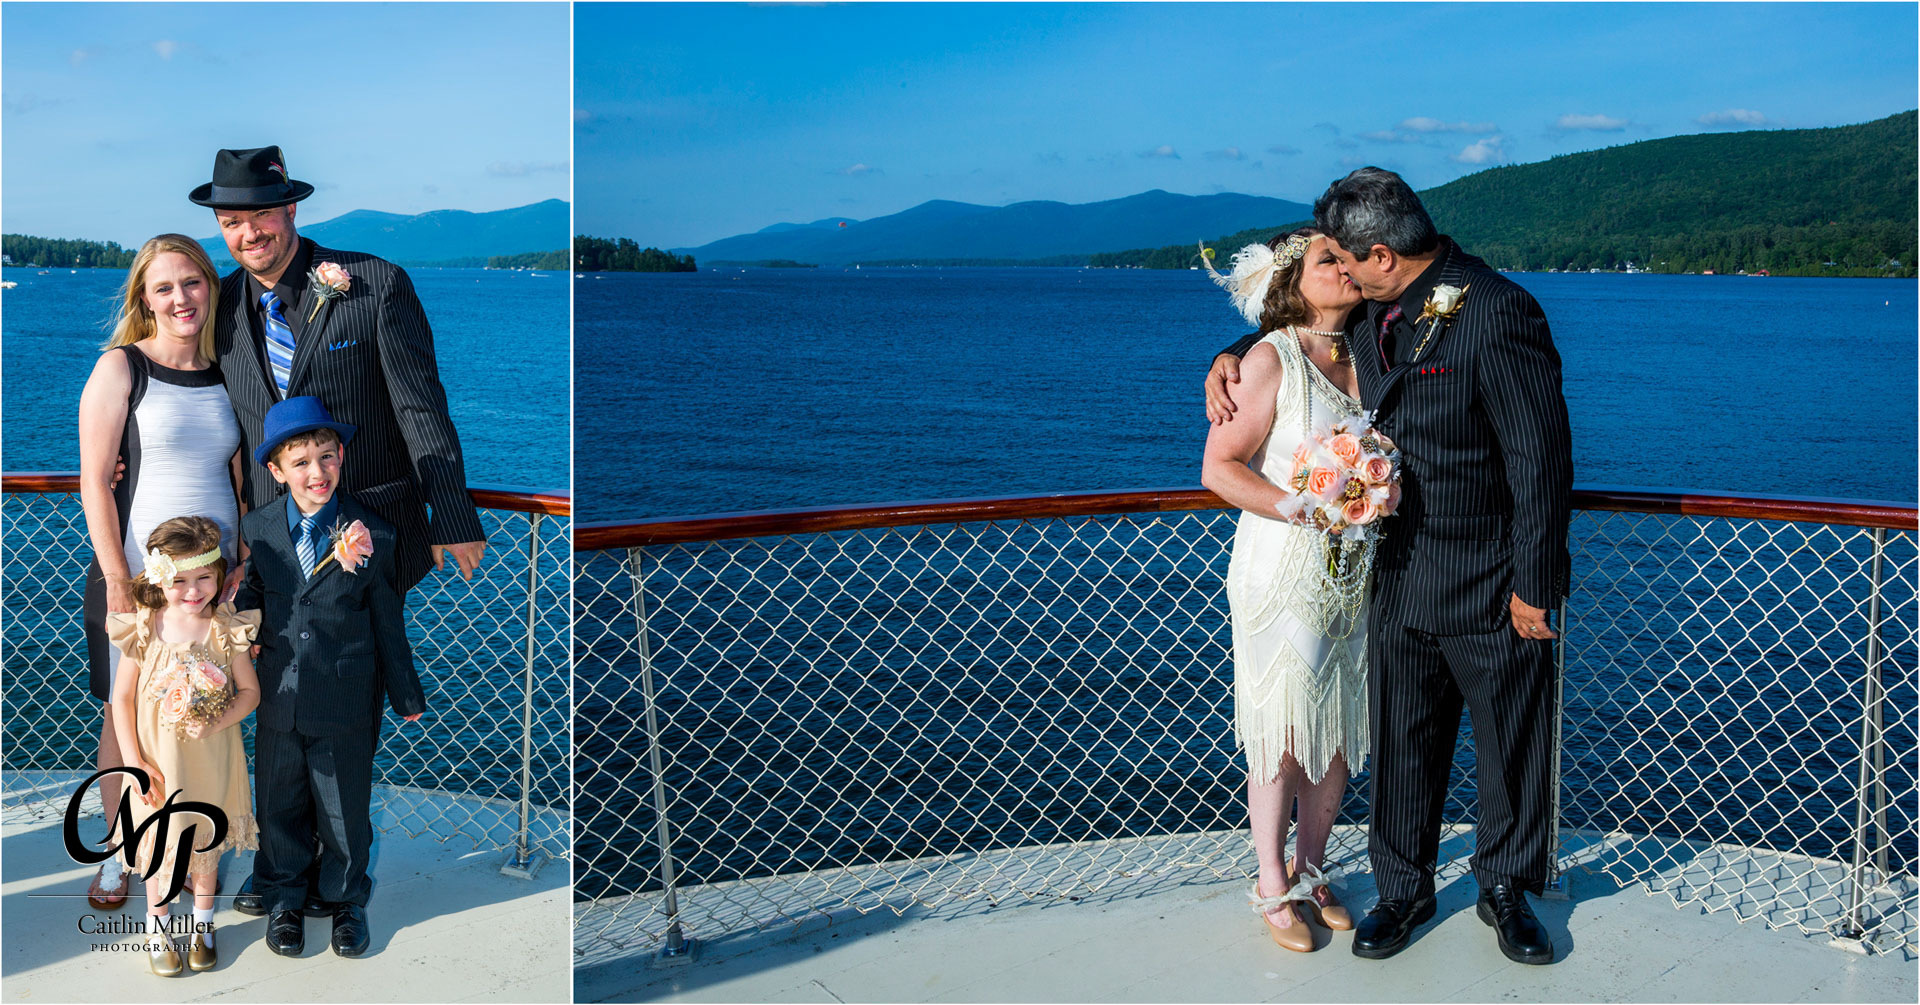 bombard-21.jpg from Jan and Robert's vow renewal on shoreline Cruise's Adirondac Boat on Lake George, NY by Saratoga Wedding Photographer Caitlin Miller Photography. Lake George Wedding Photographer. Stamford wedding photographer. Albany wedding photographer. Shoreline Cruises Wedding Photographer. Saratoga Wedding Photographer